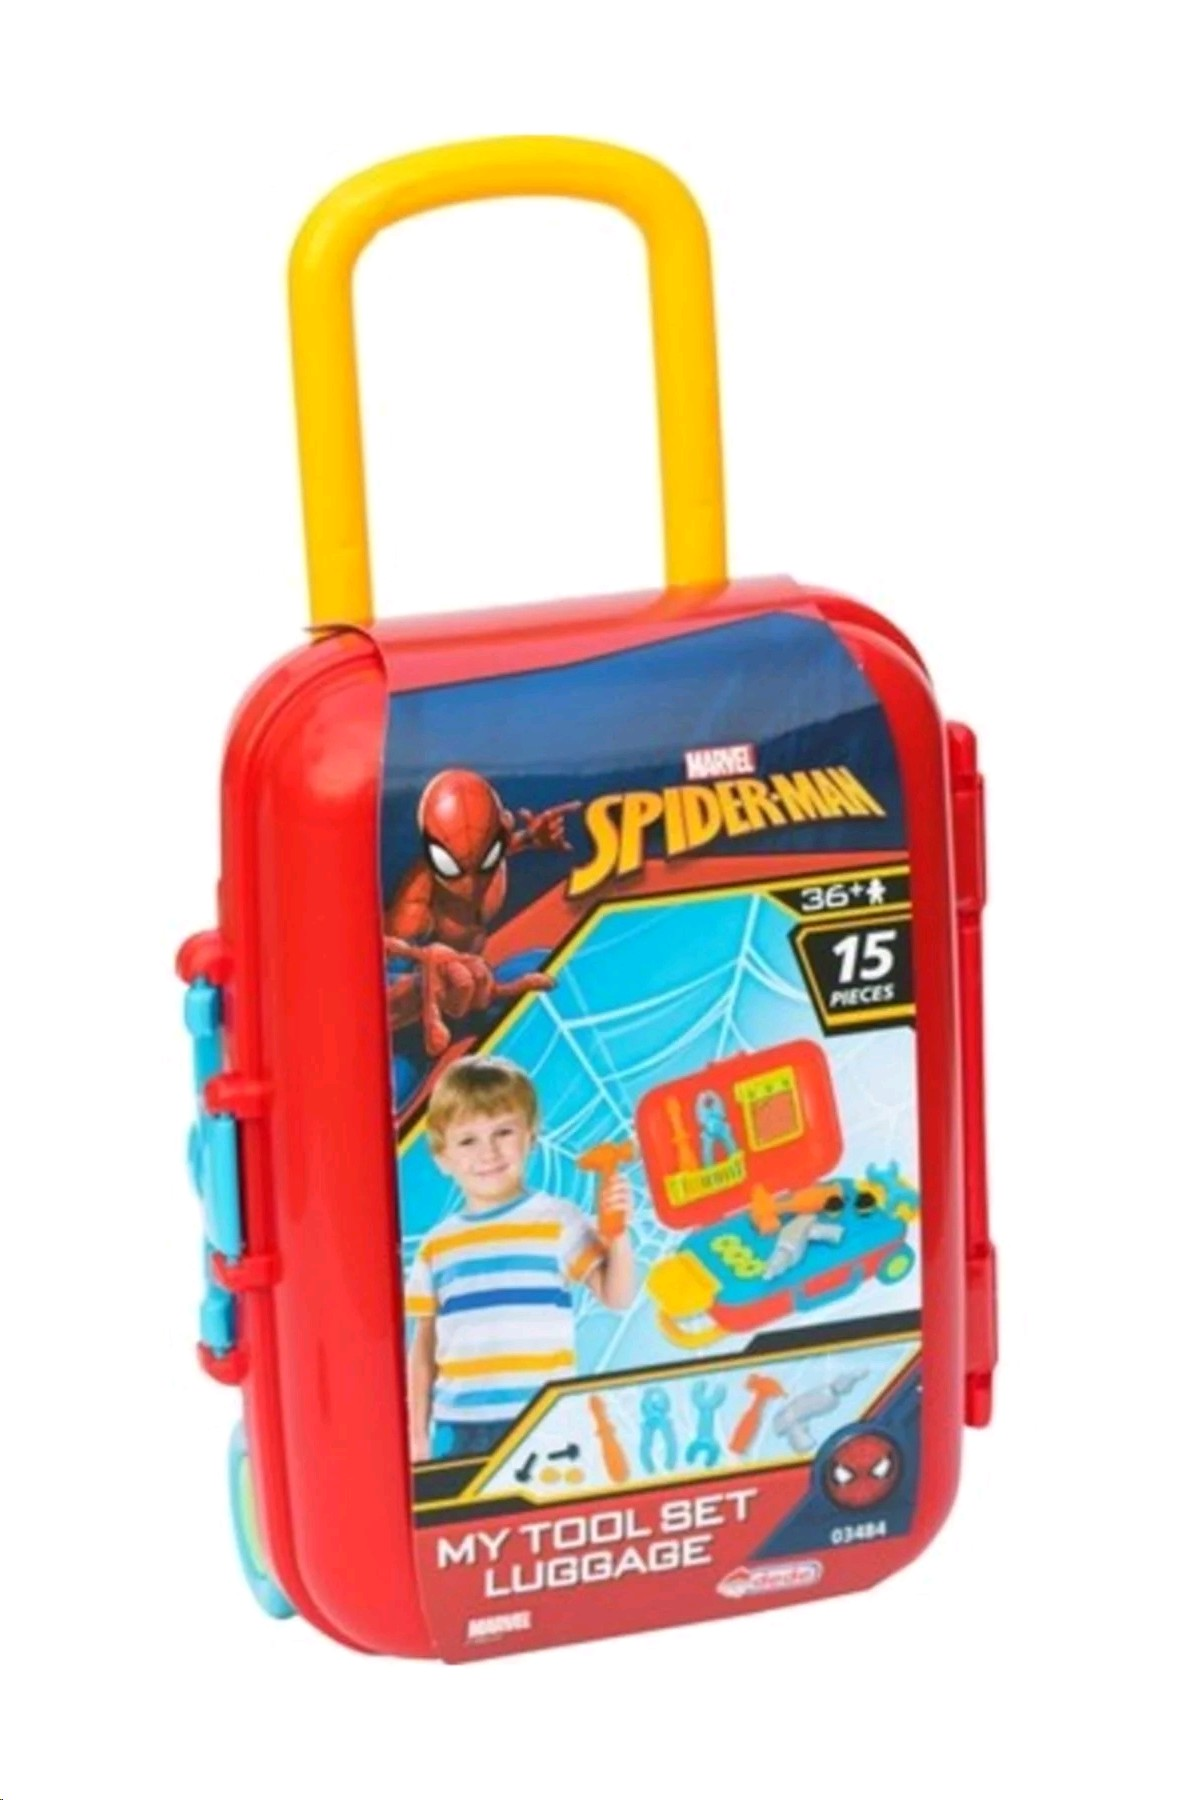 spiderman-tamir-set-bavulum-03484